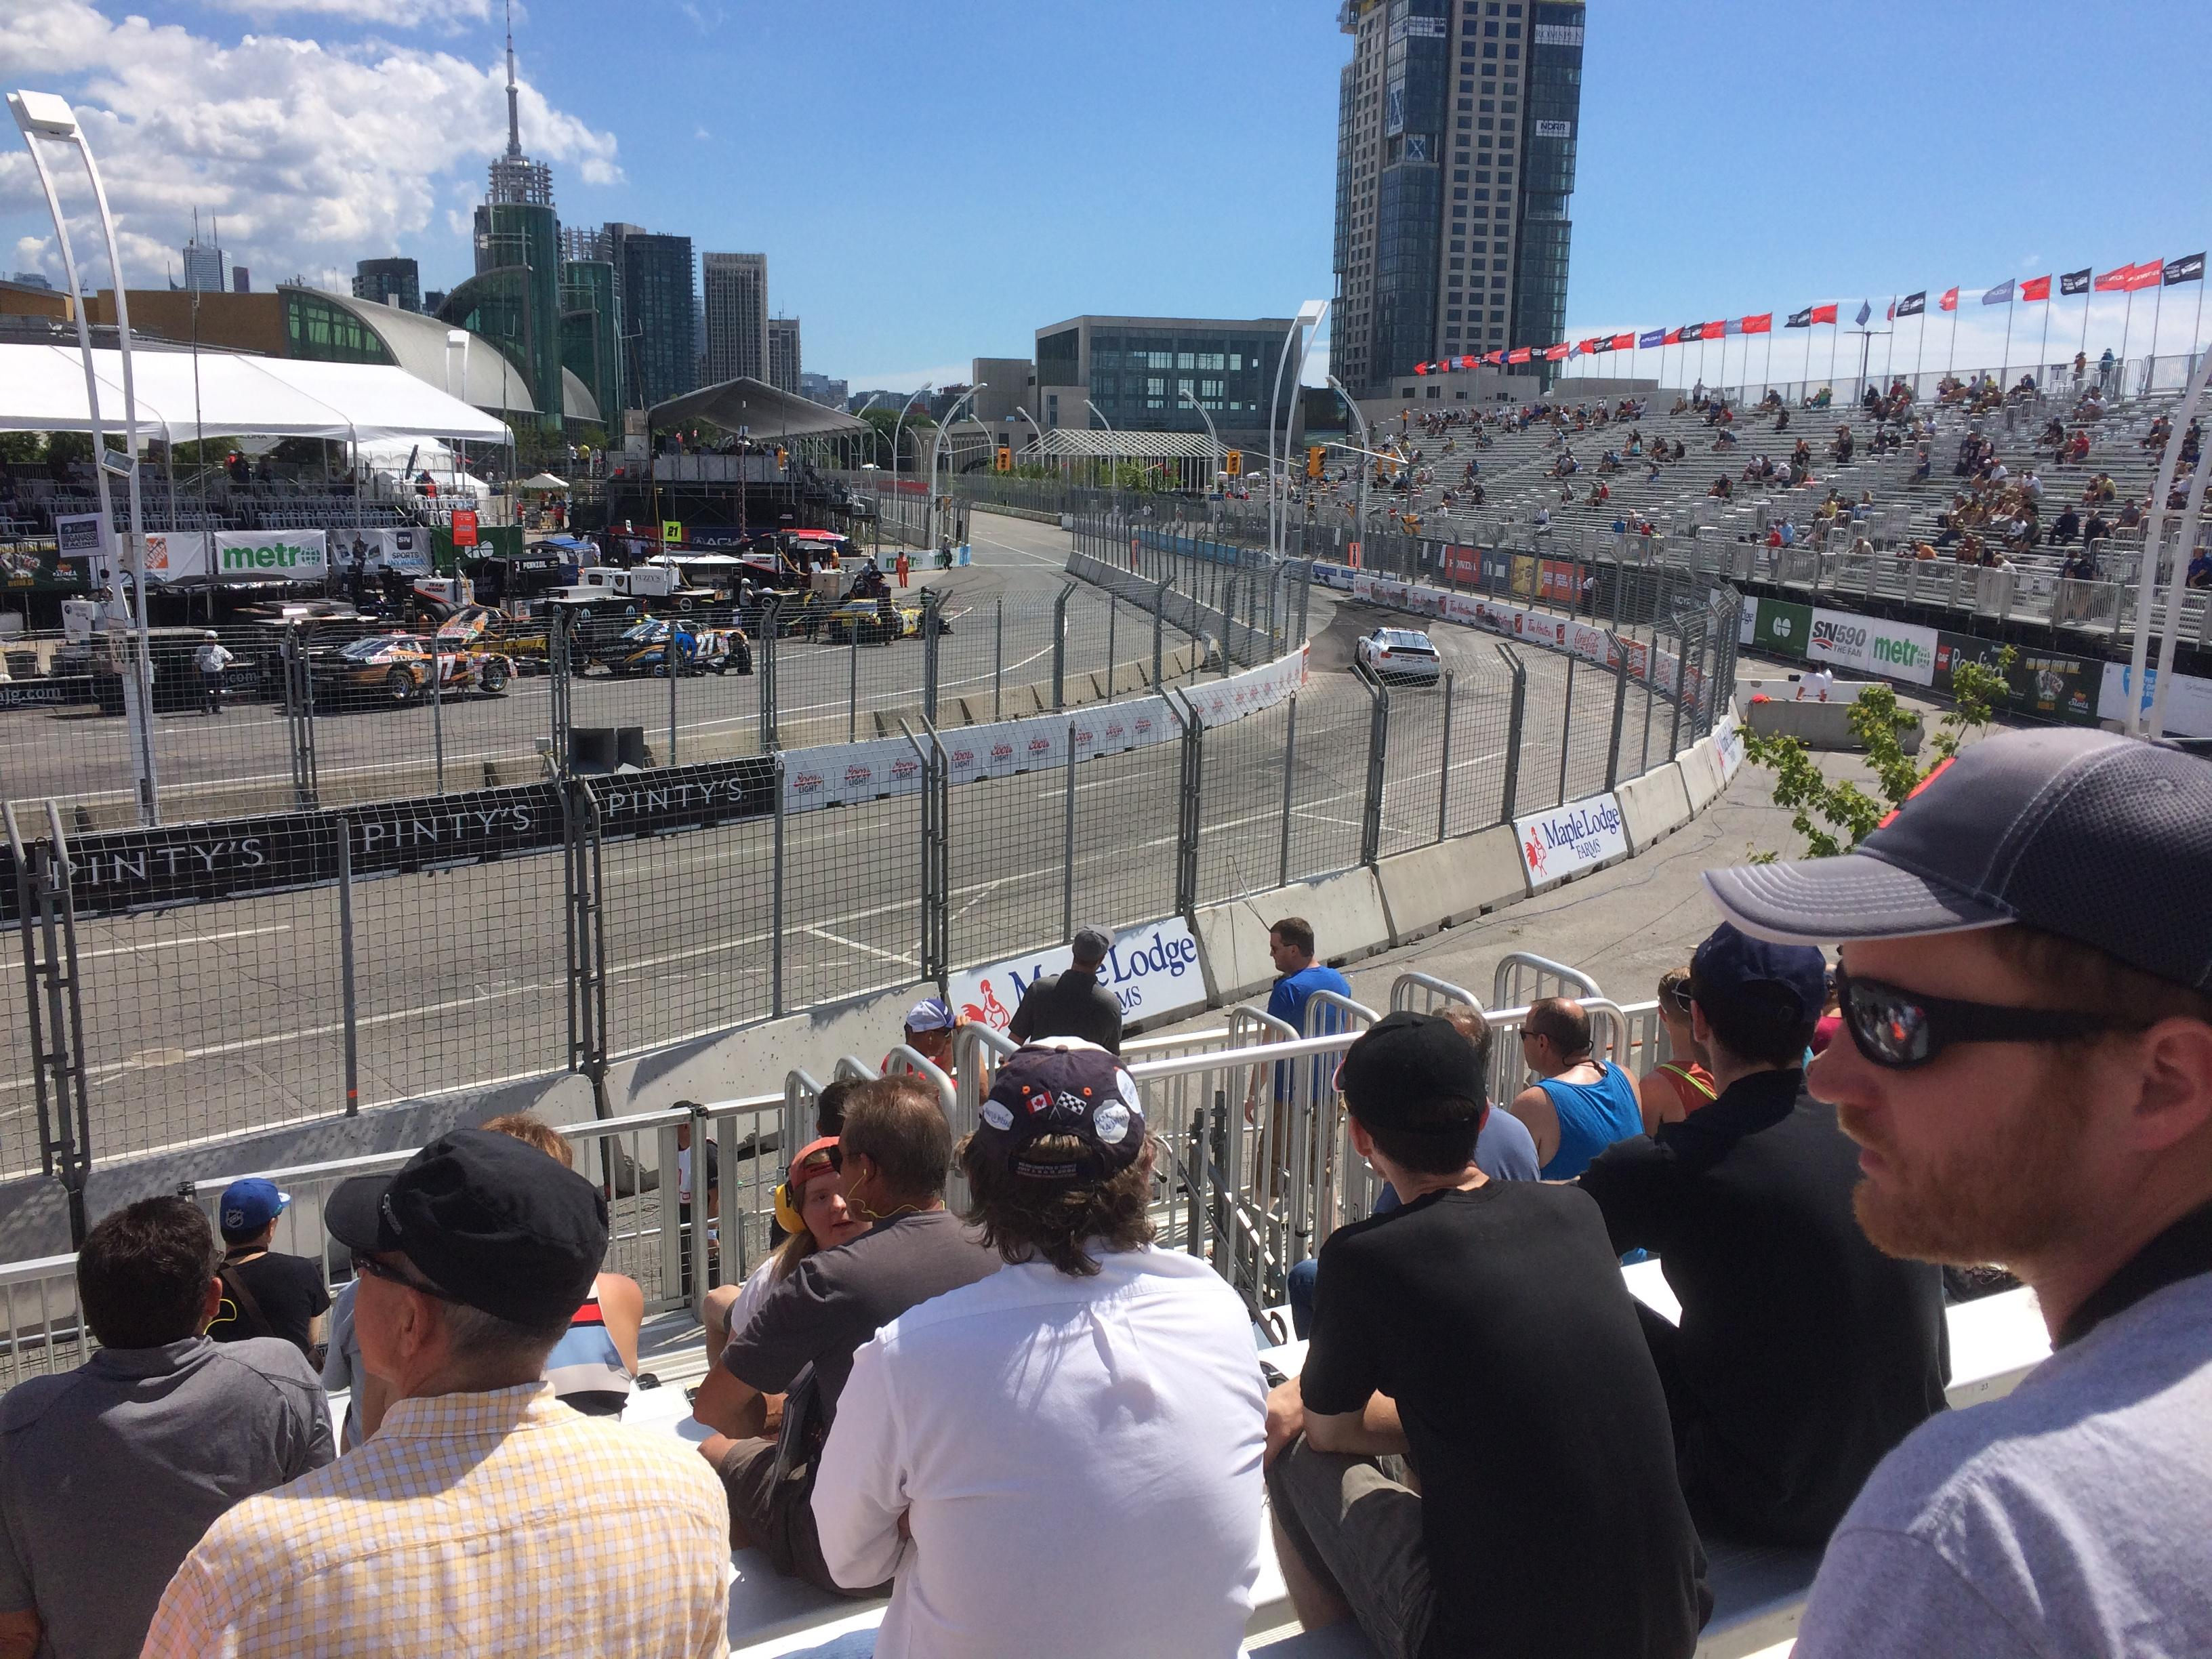 Exhibition Place Section Turn 11 D Row 13 Seat 3